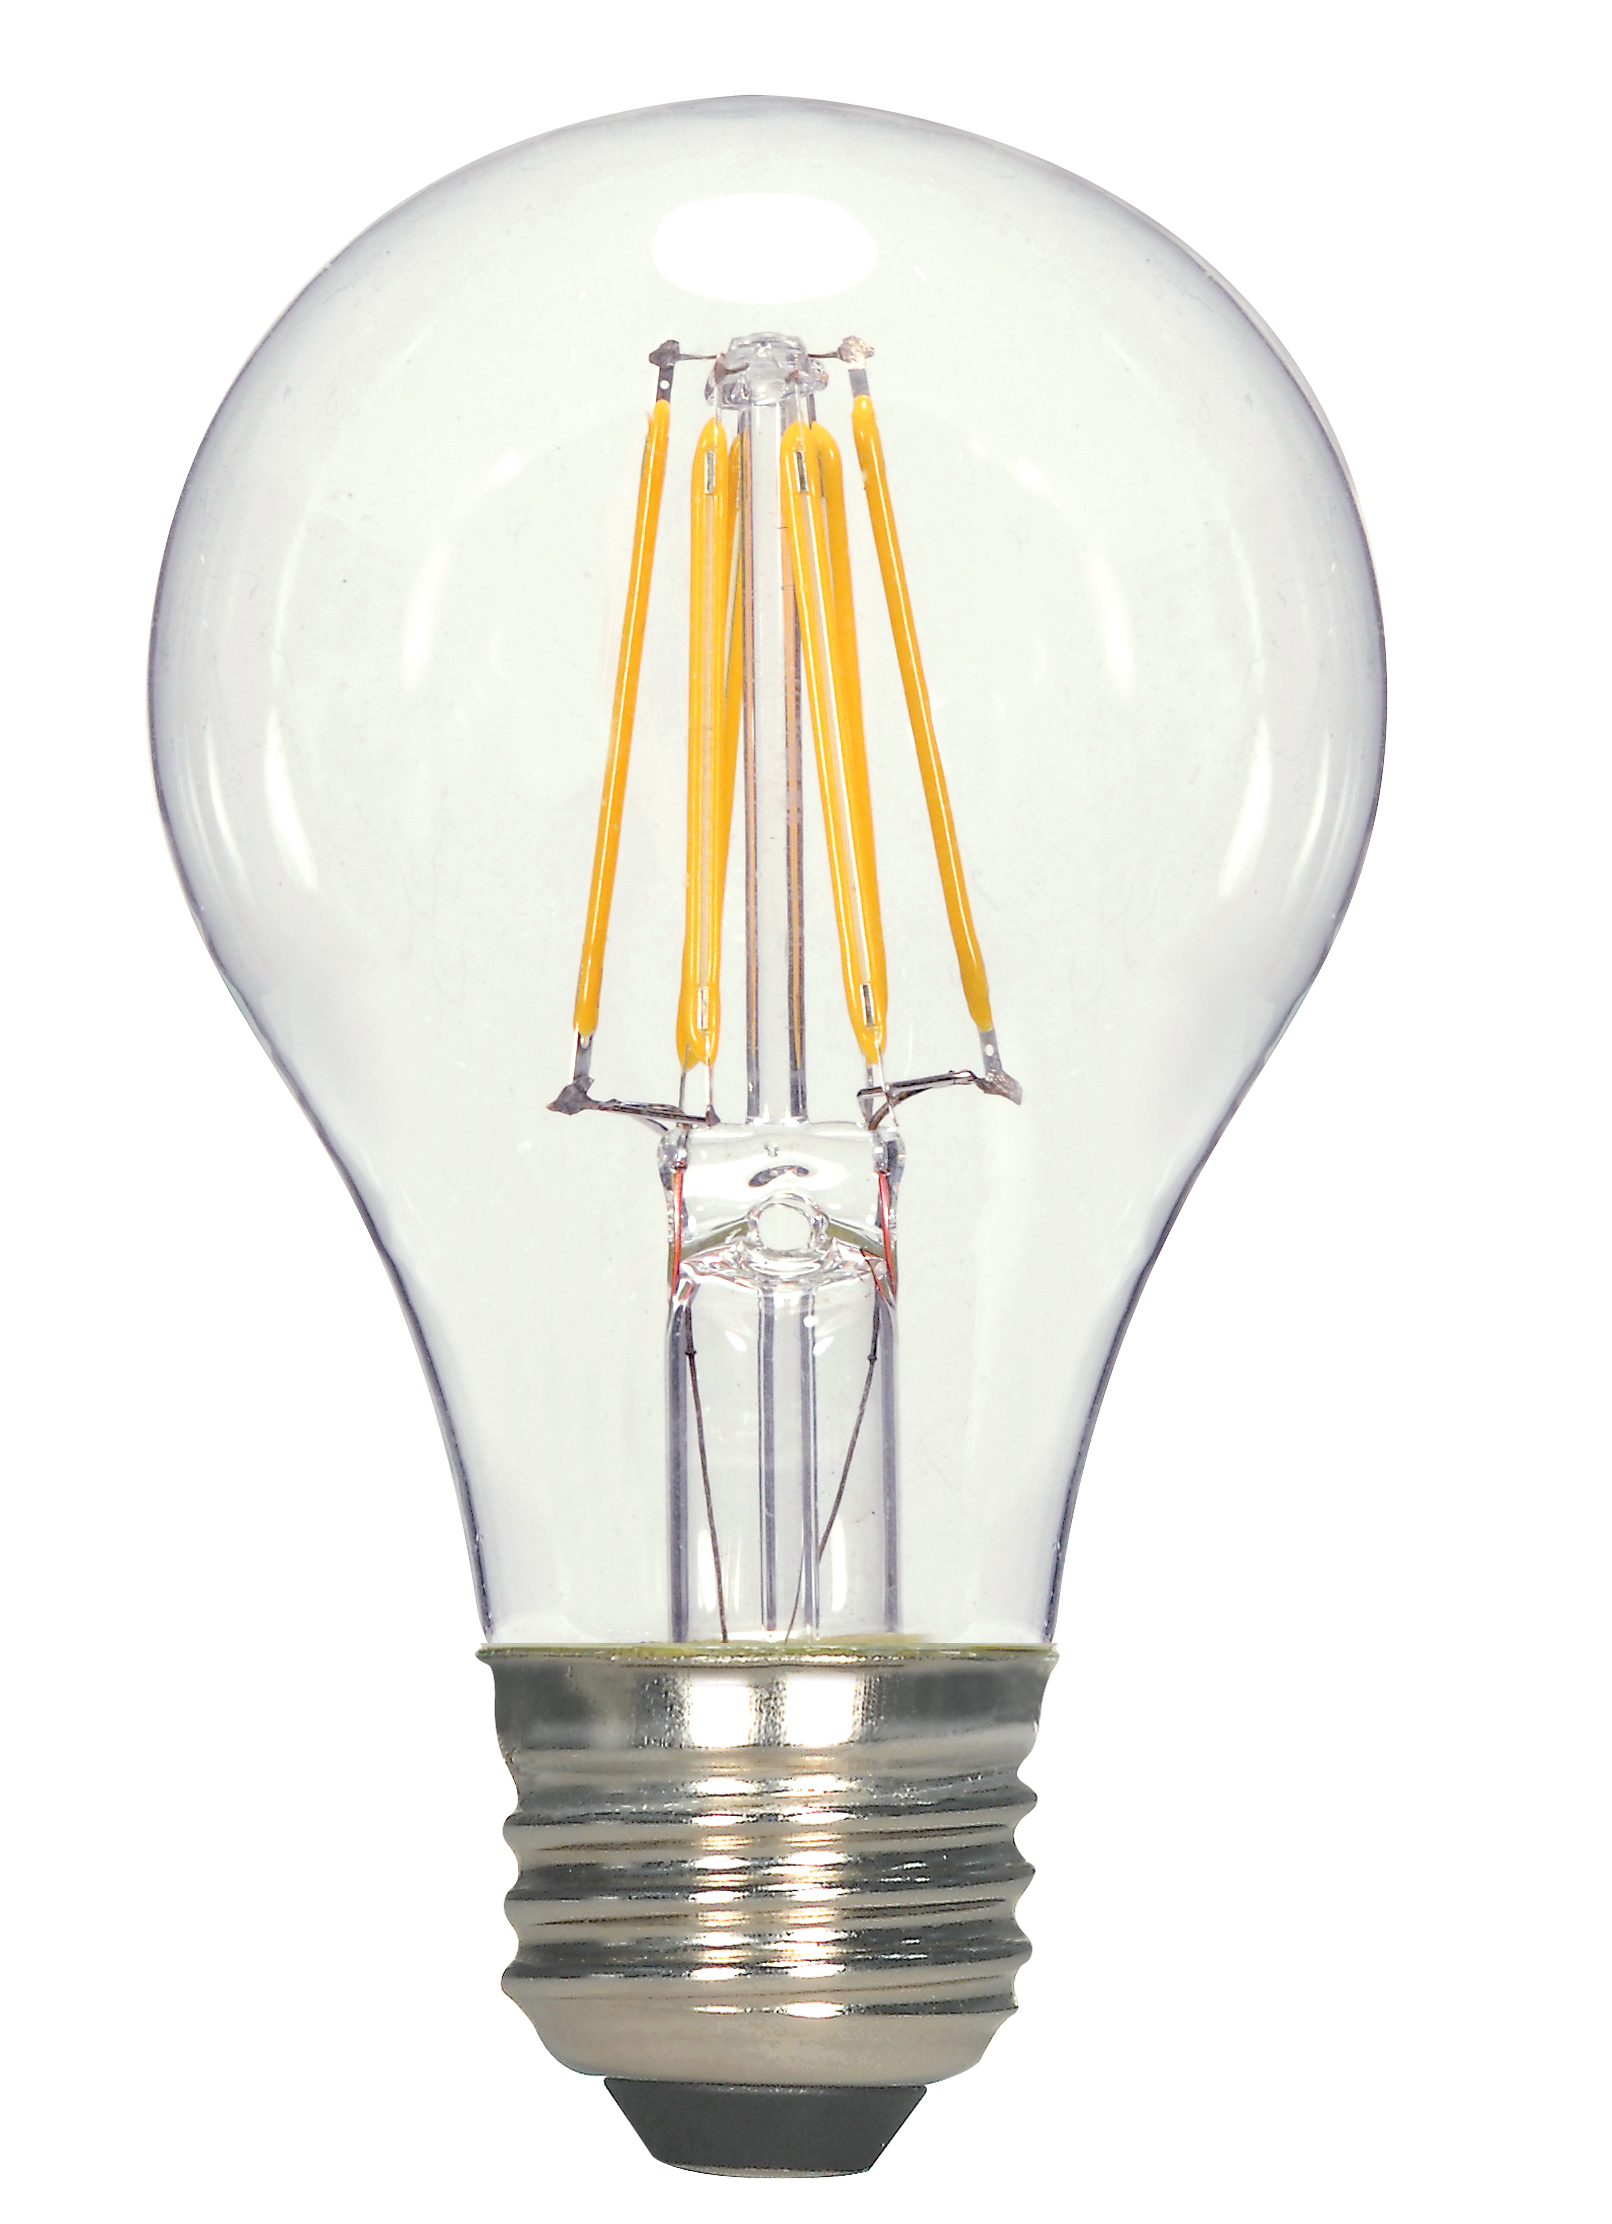 Led Filament Bulbs The Next Generation Of Led Lighting Ele Times